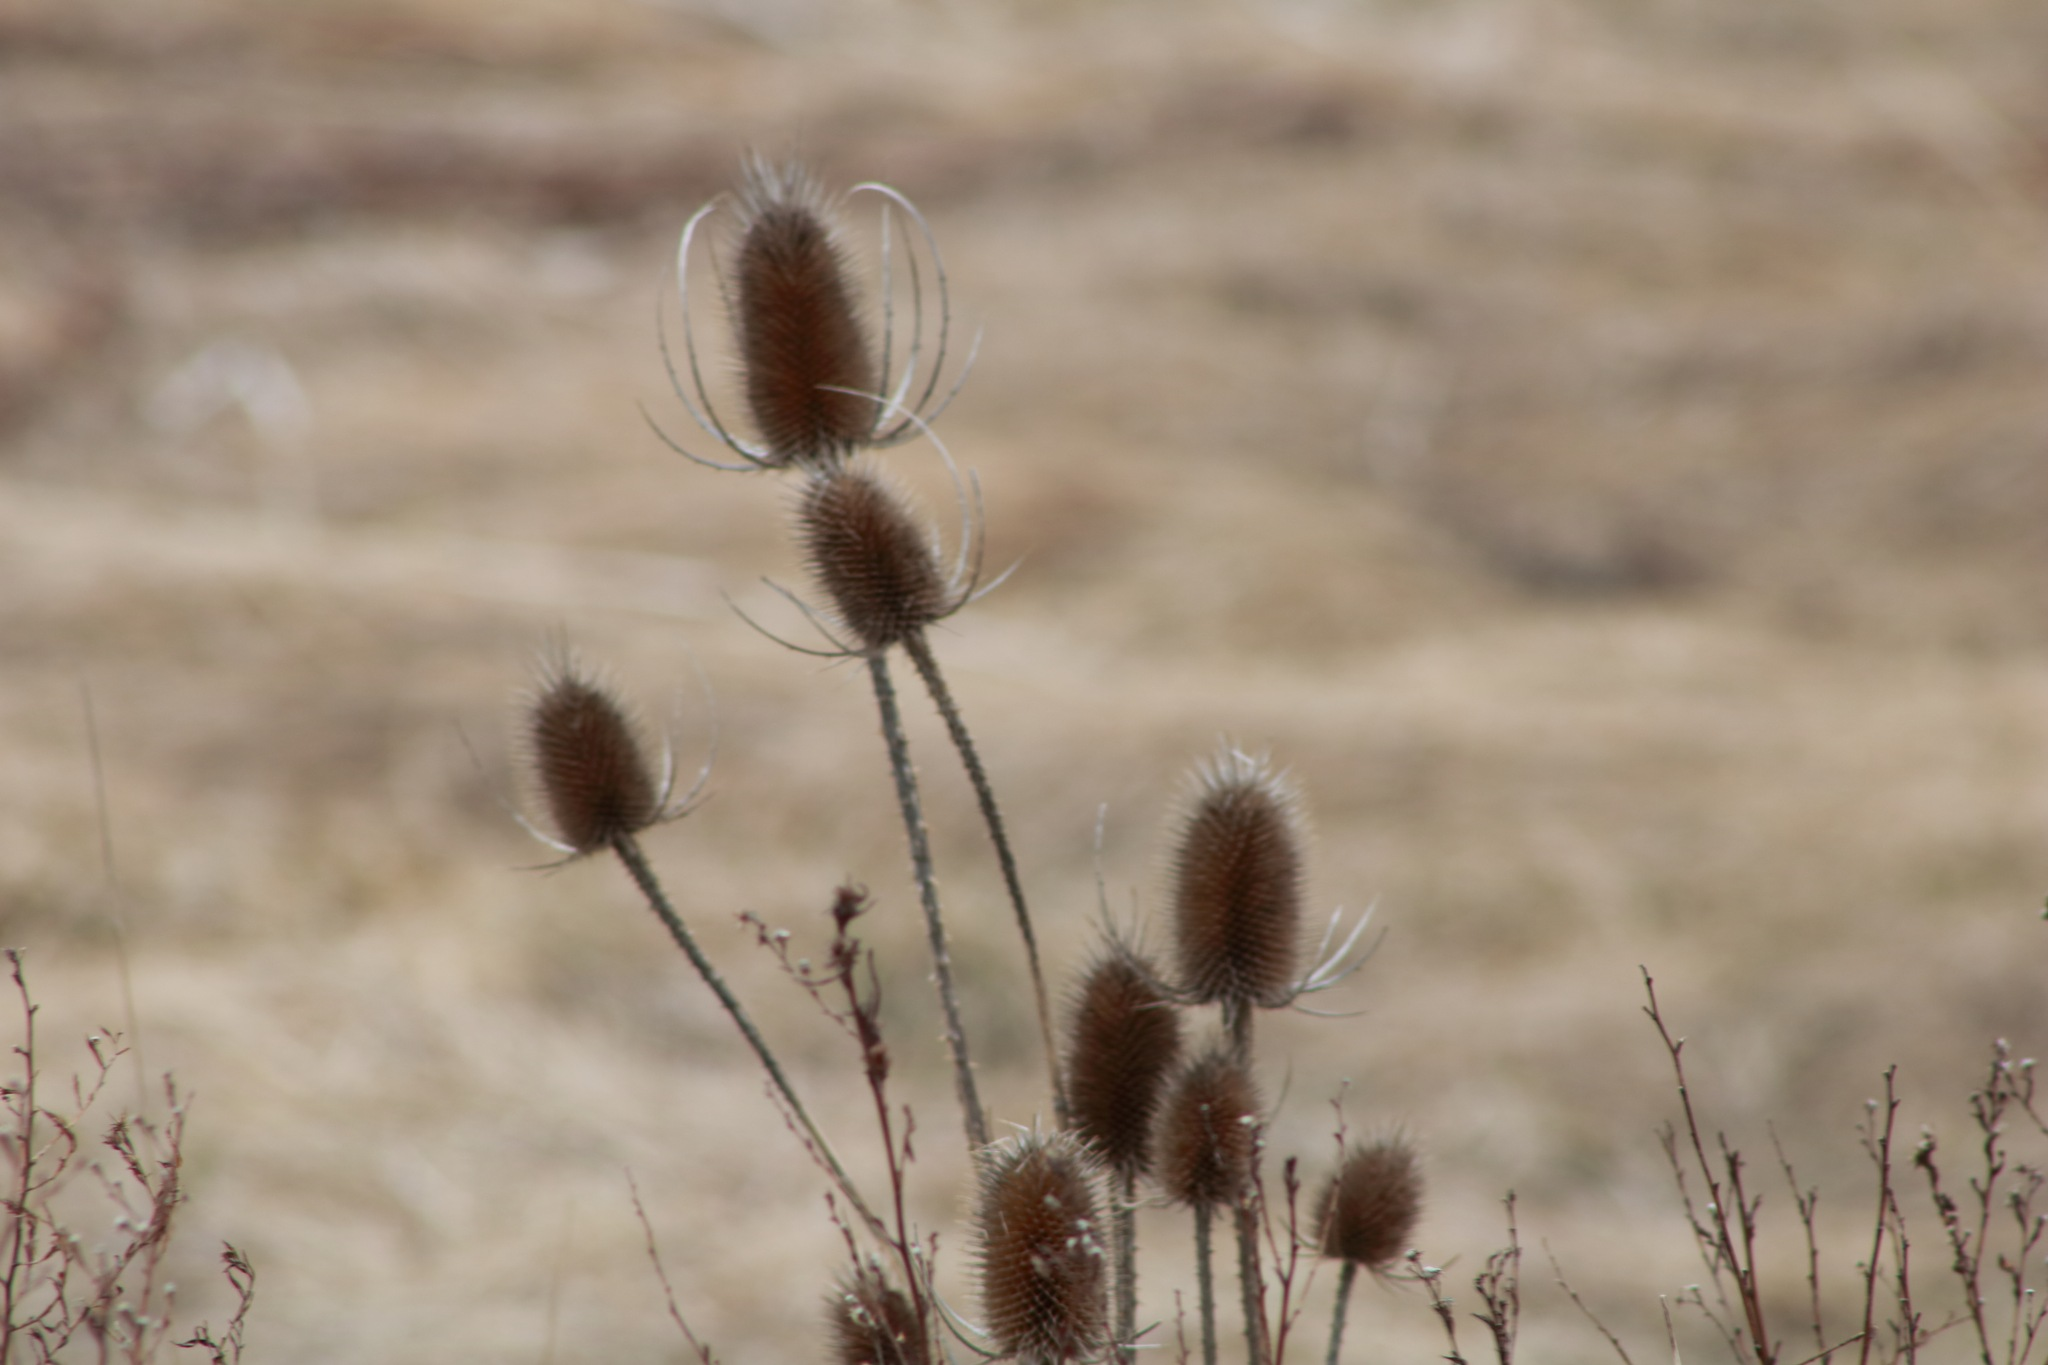 thistles in the field by Peter O Merz